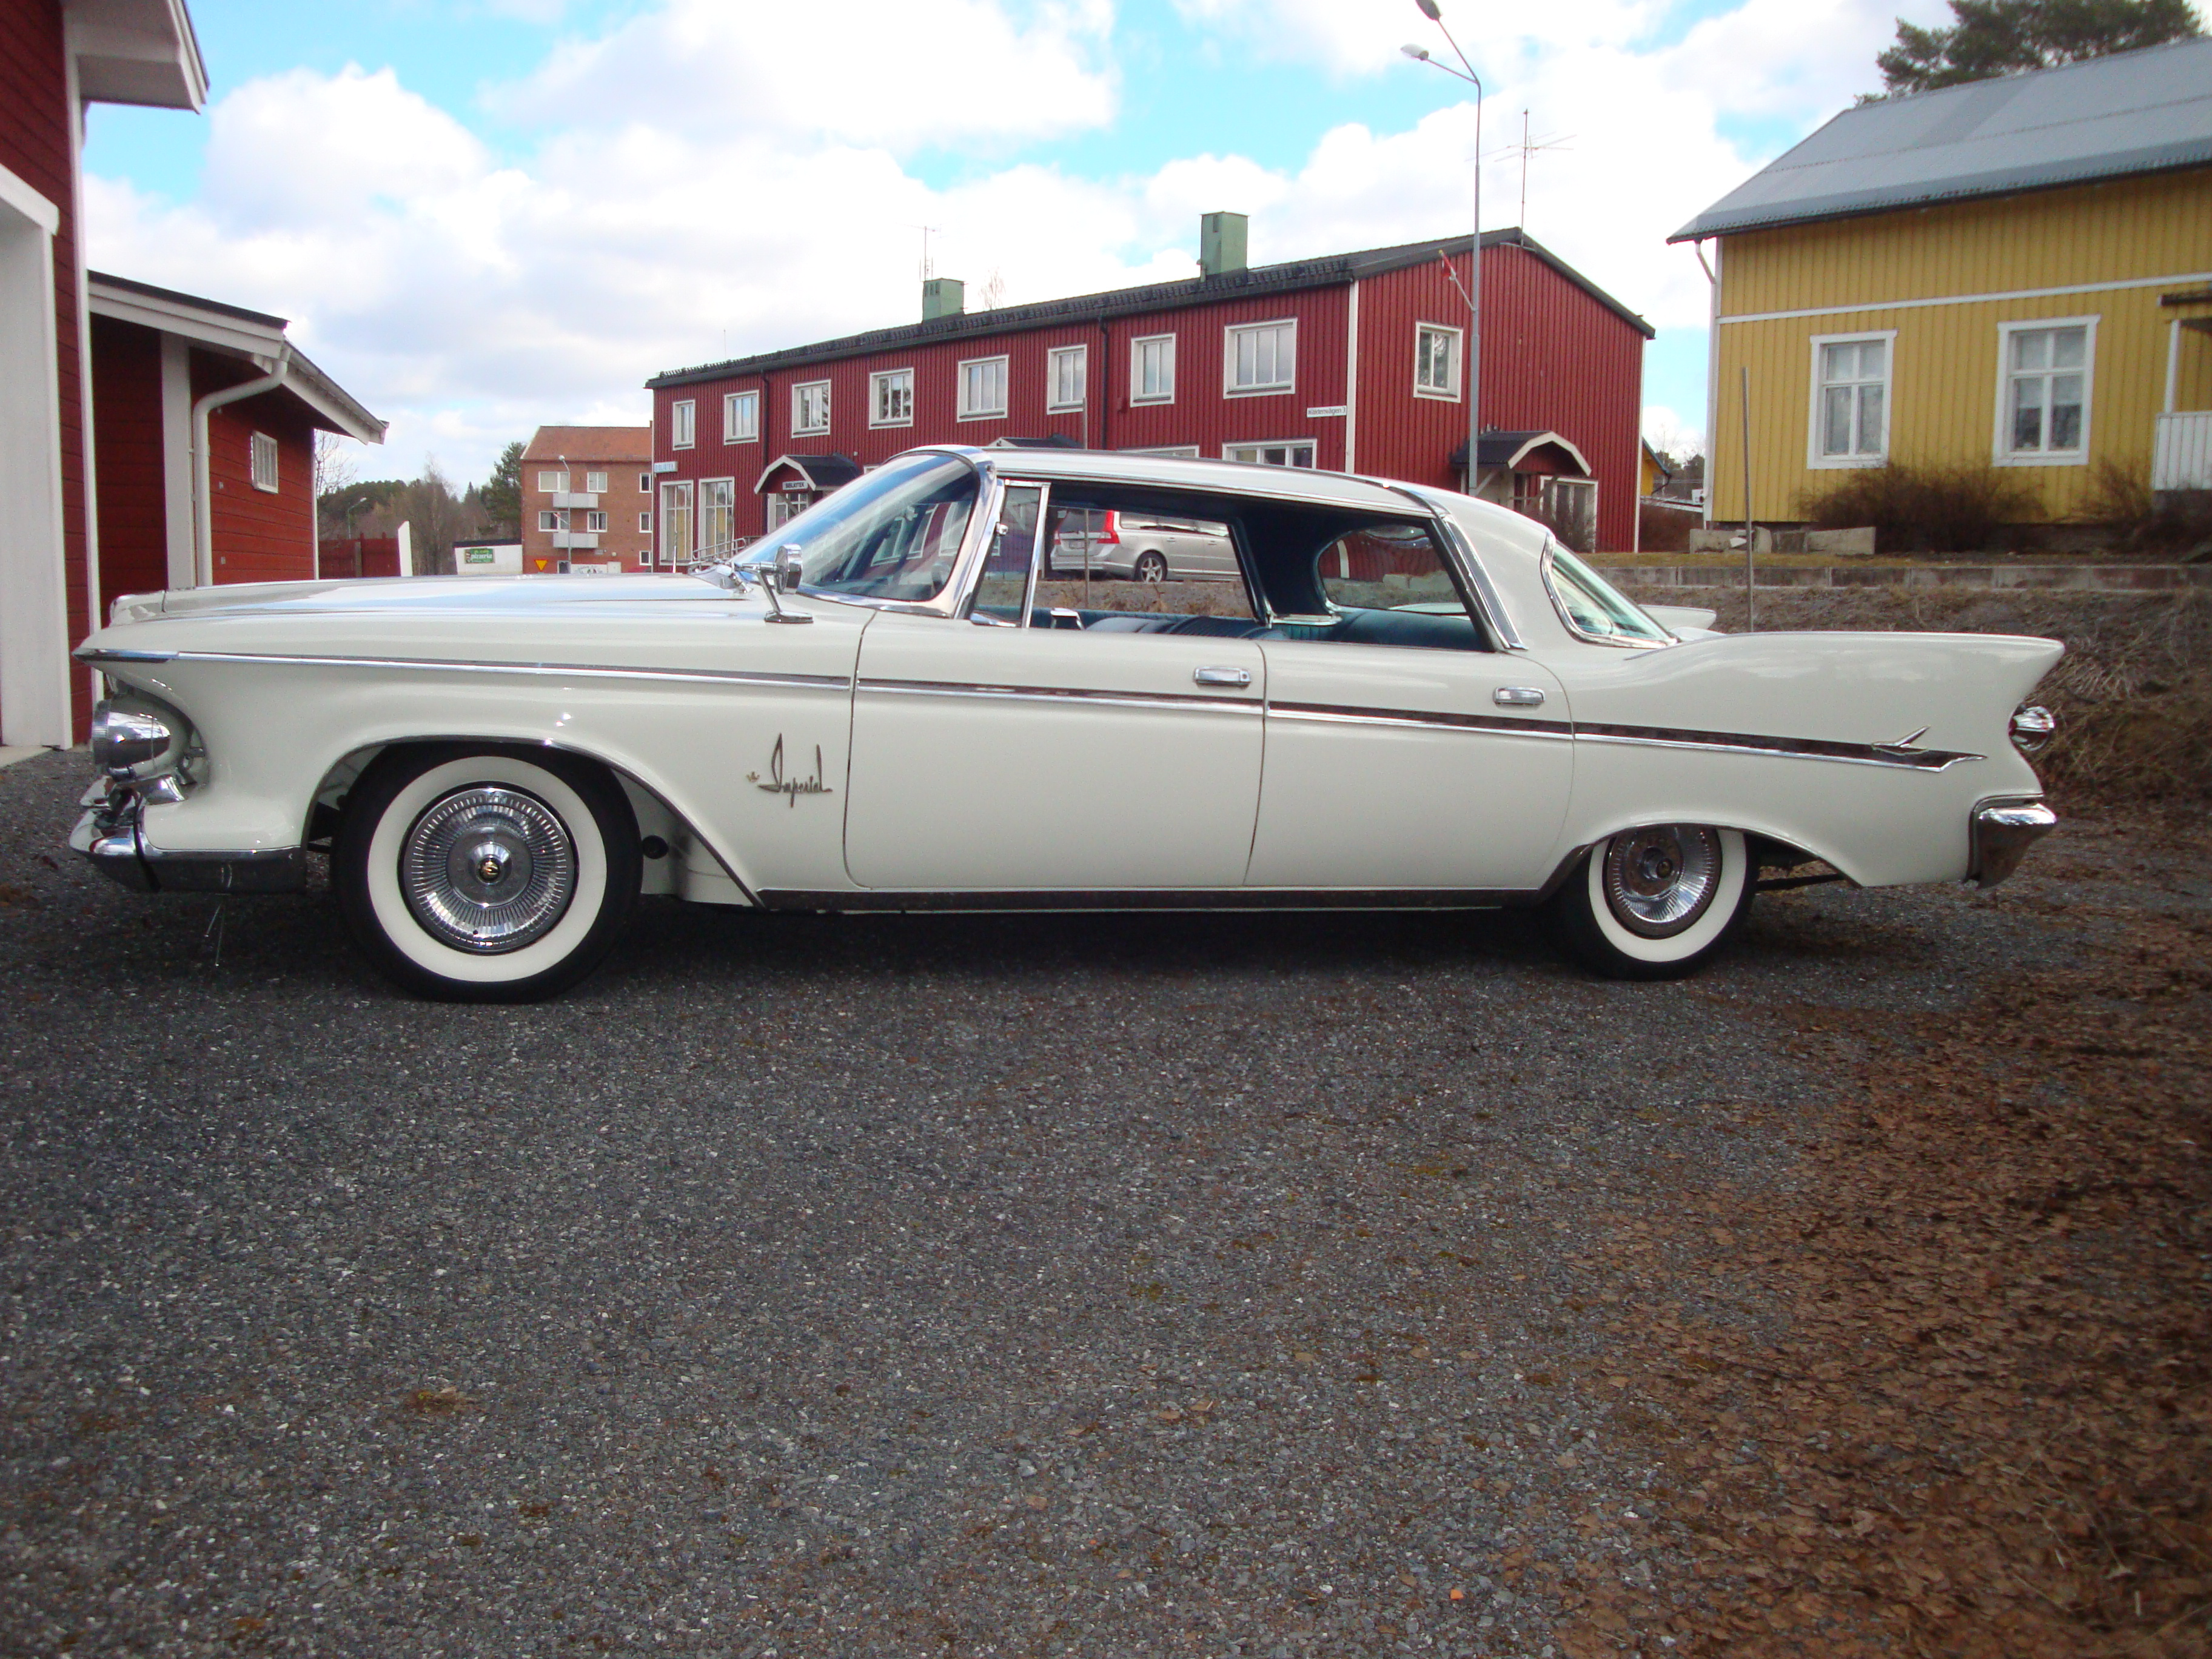 Chrysler Imperial 61 Showcases car PS Auction